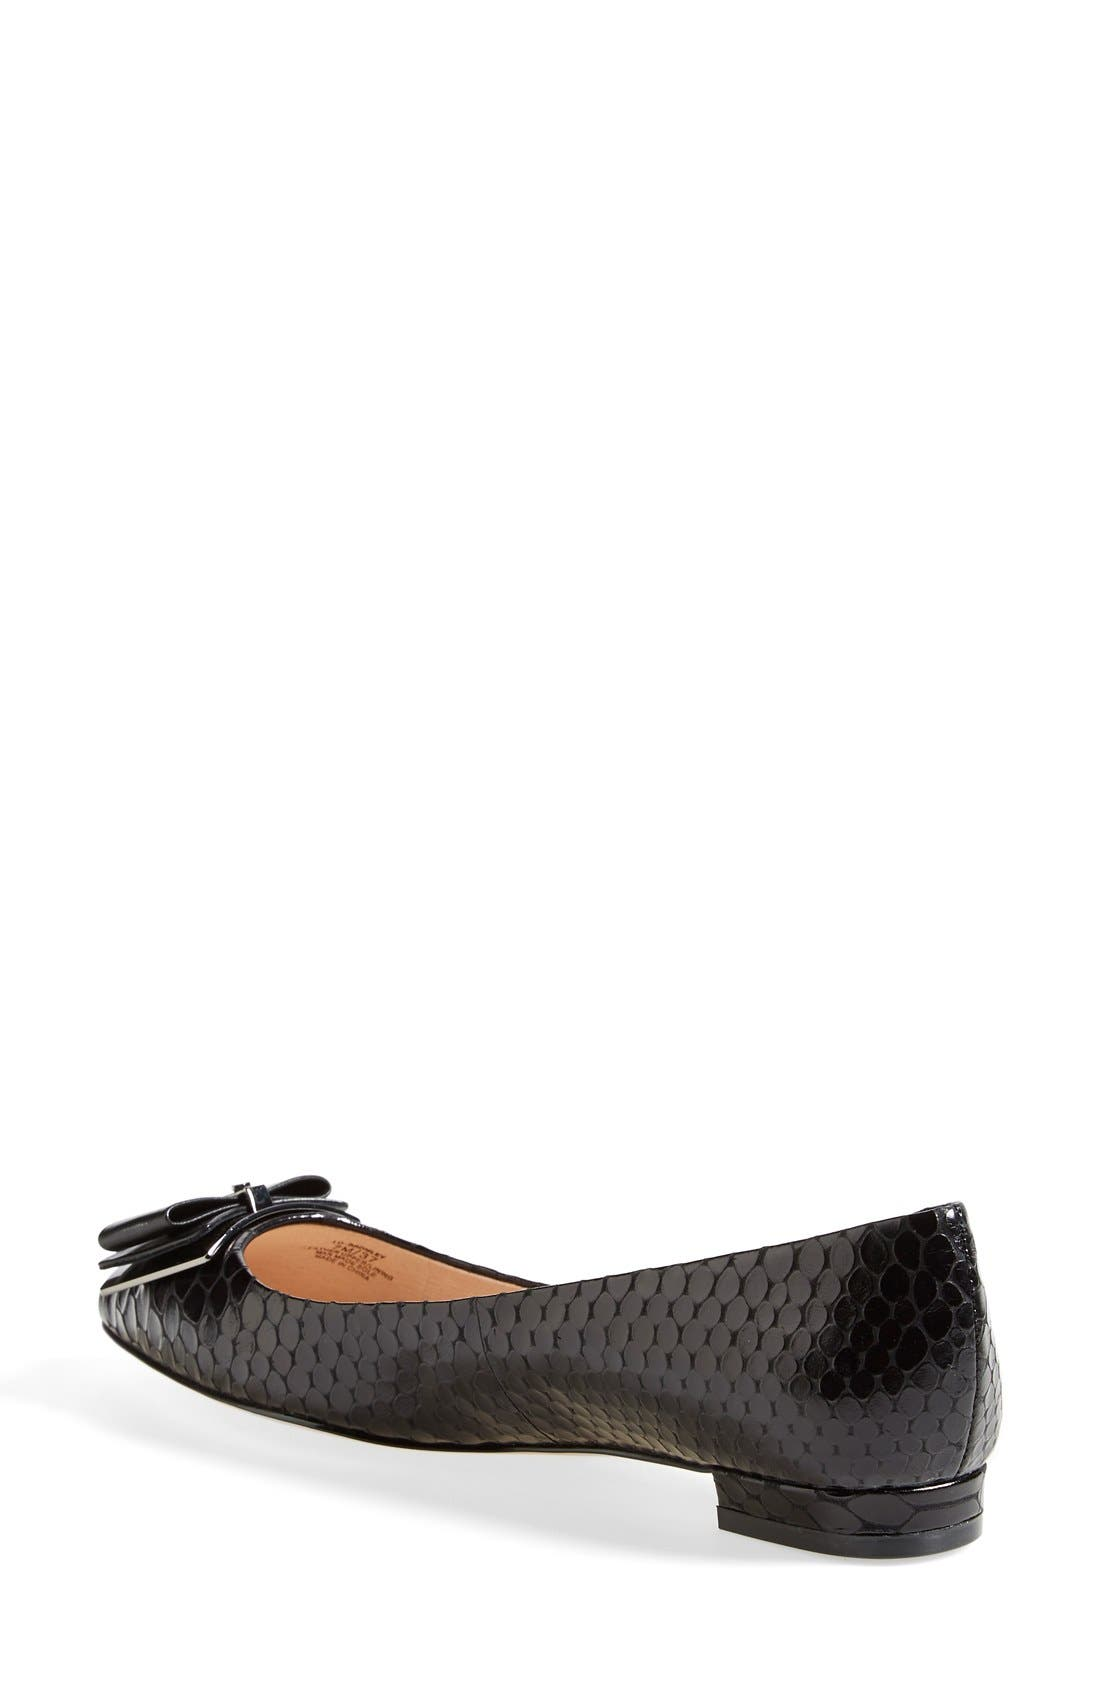 Alternate Image 2  - Louise et Cie 'Bromley' Genuine Snakeskin Flat (Women)